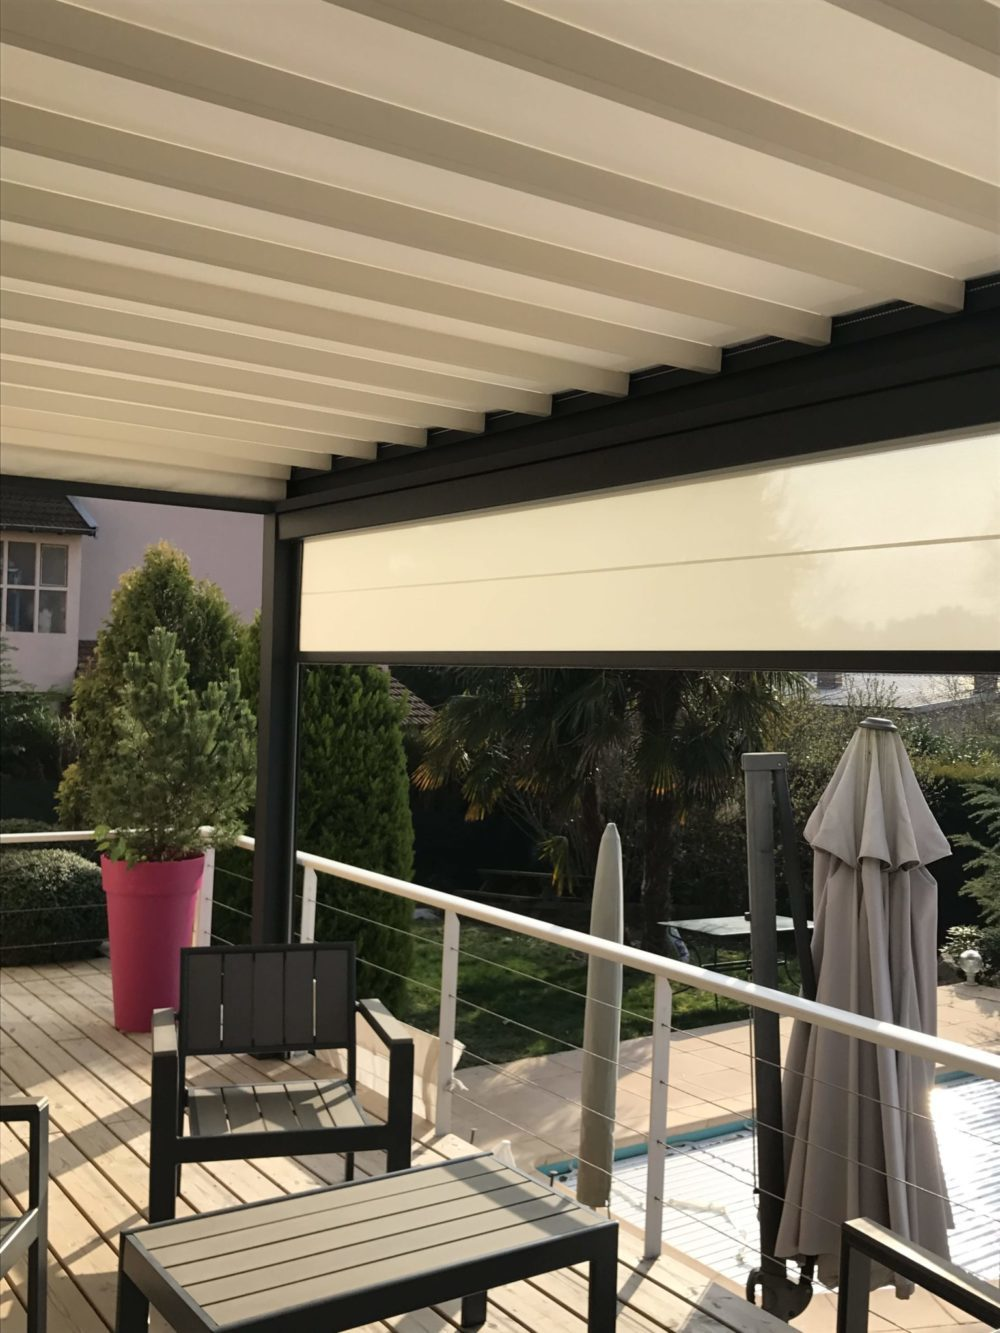 toile pergola stunning pergola gennius a doppia toile rtractable with toile pergola stunning. Black Bedroom Furniture Sets. Home Design Ideas